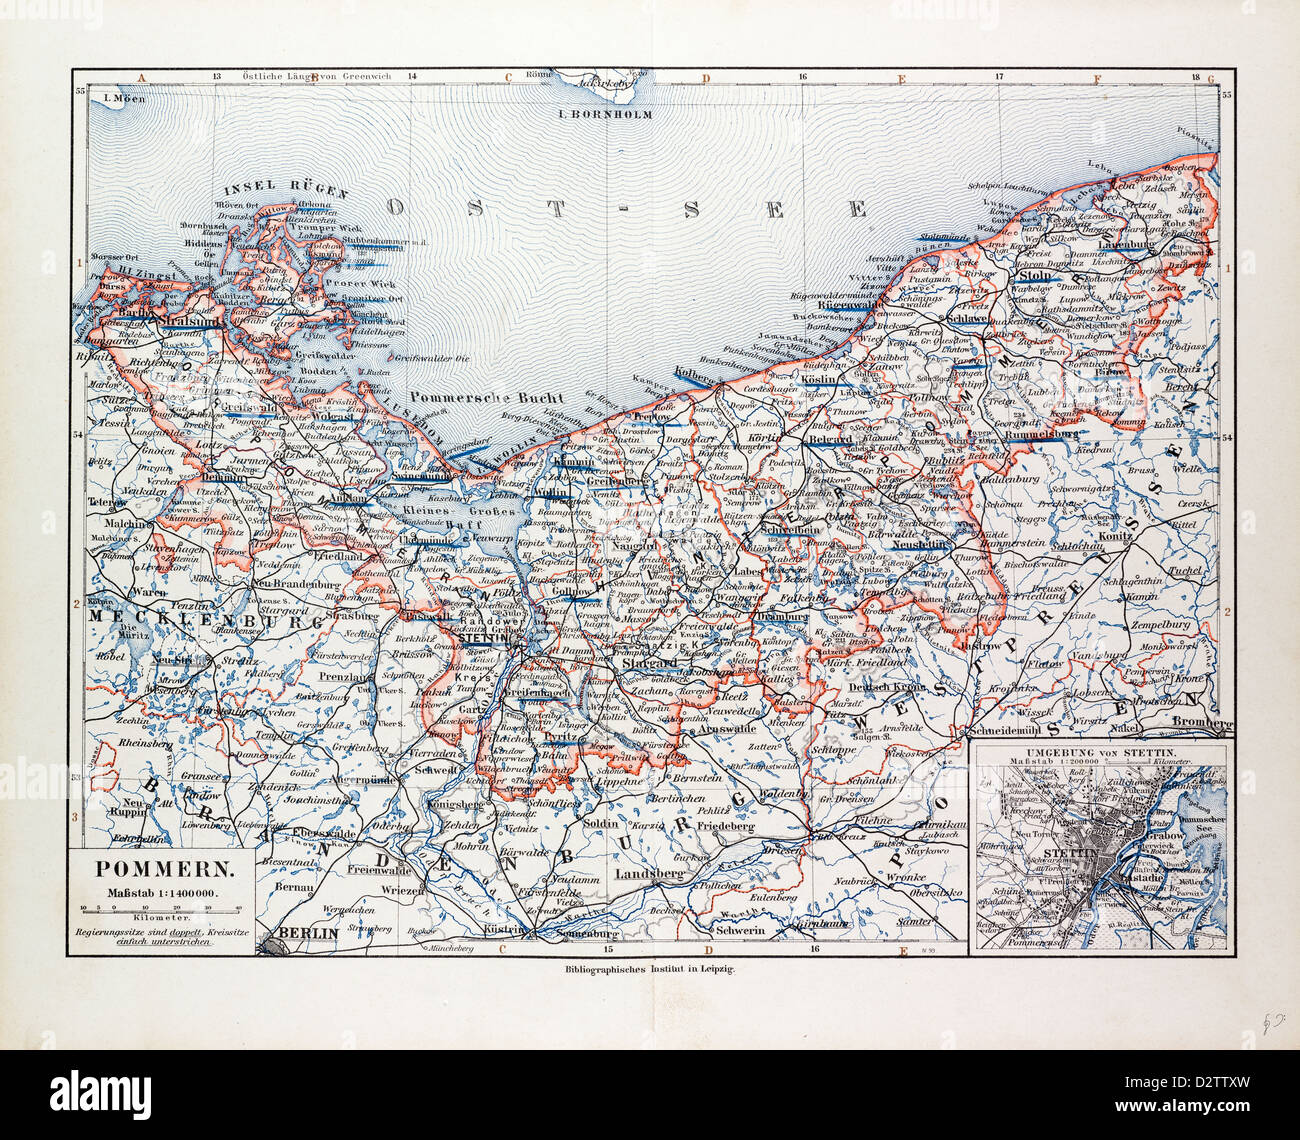 Map Of North West Germany.Map Of Pommern Mecklenburg Vorpommern Germany And North West